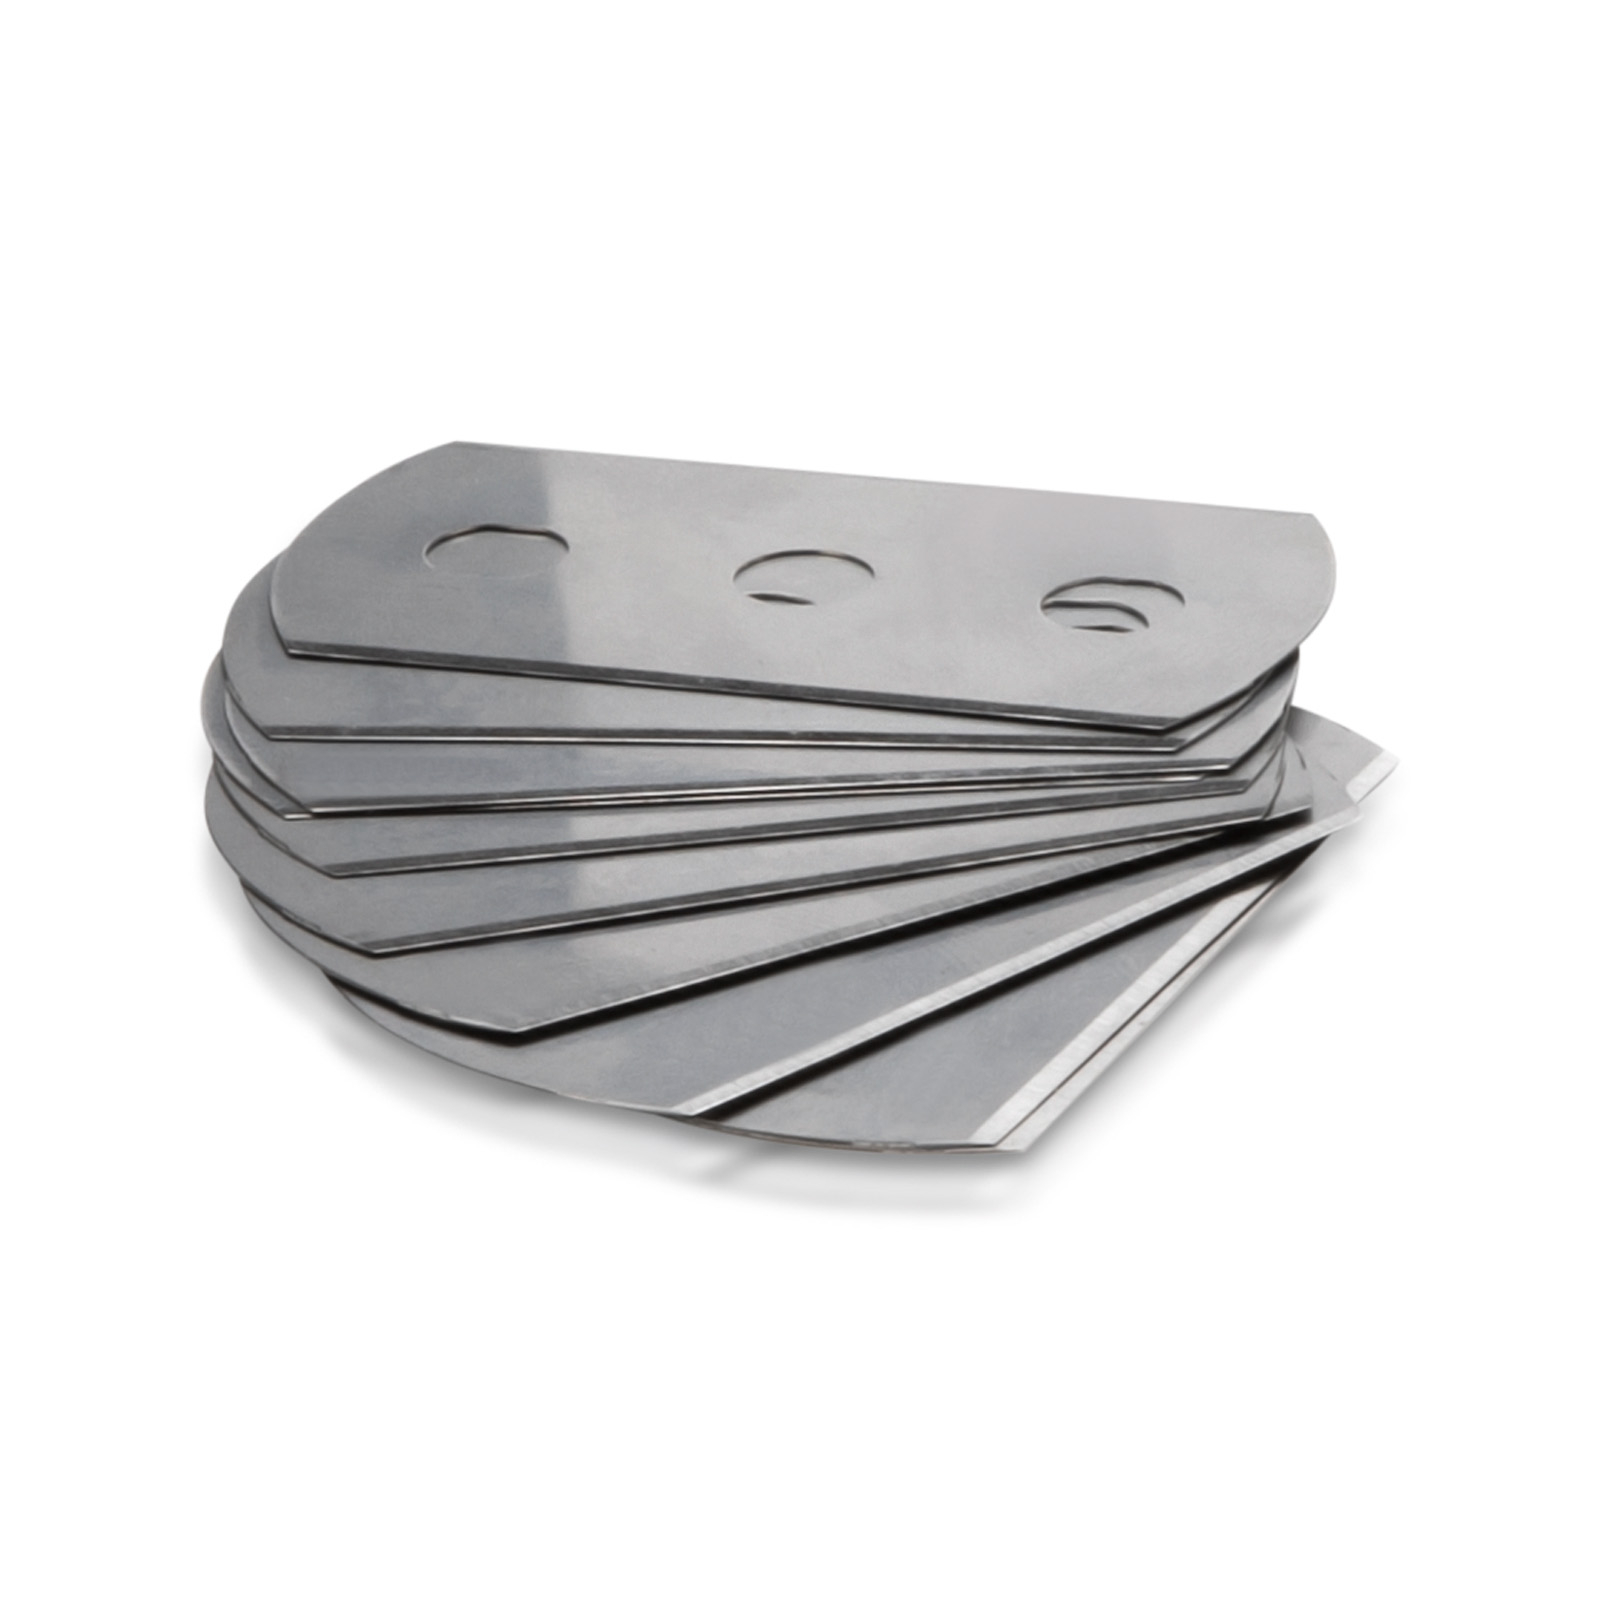 Replacement Carbon Steel Blades for Razor Scraper (Pack of 10)